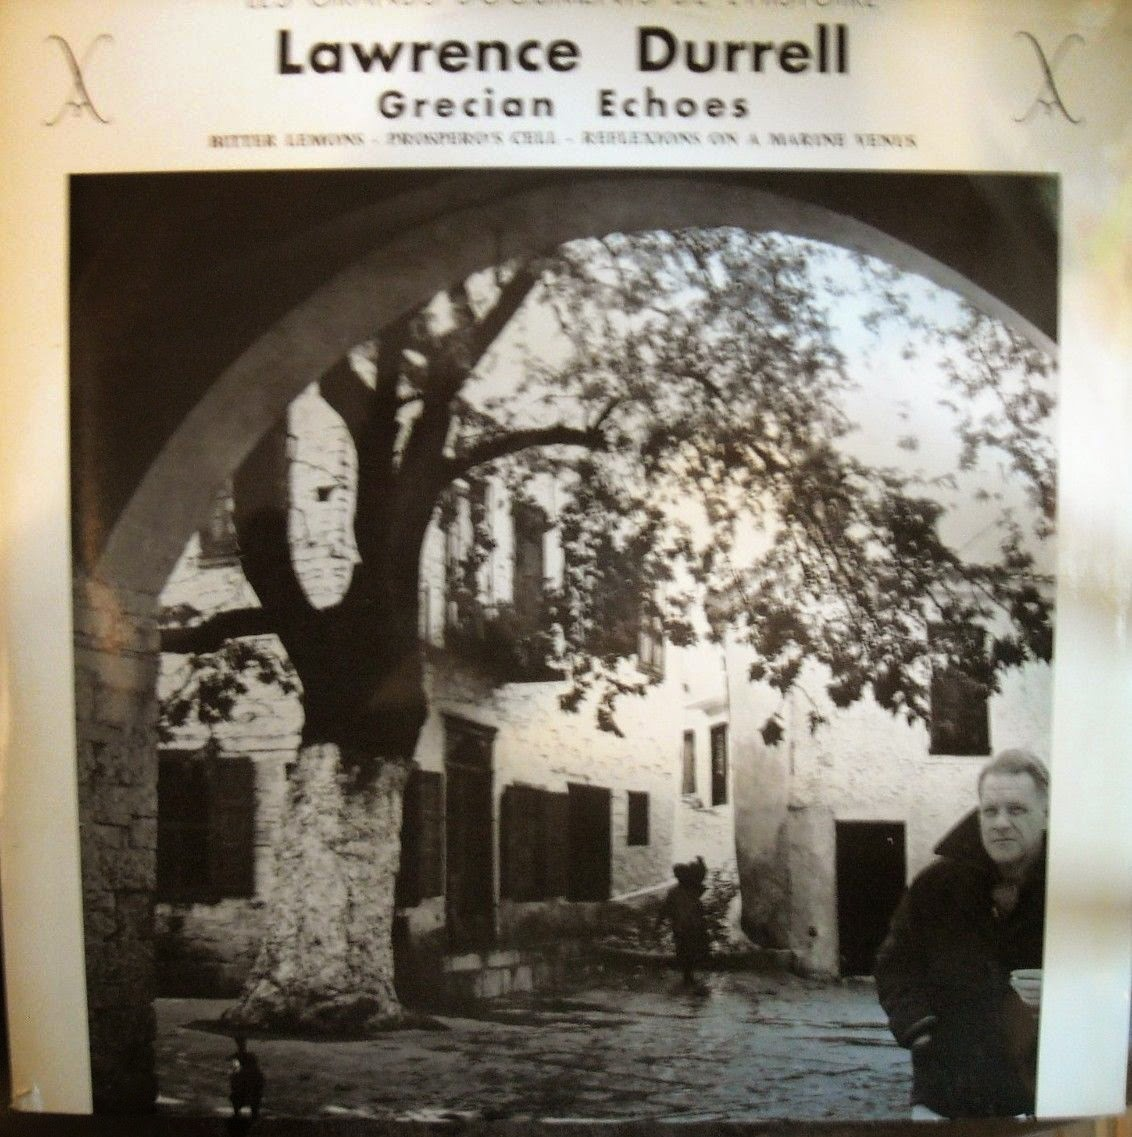 Global Views Lp: Corfu Blues And Global Views: Lawrence Durrell Reads